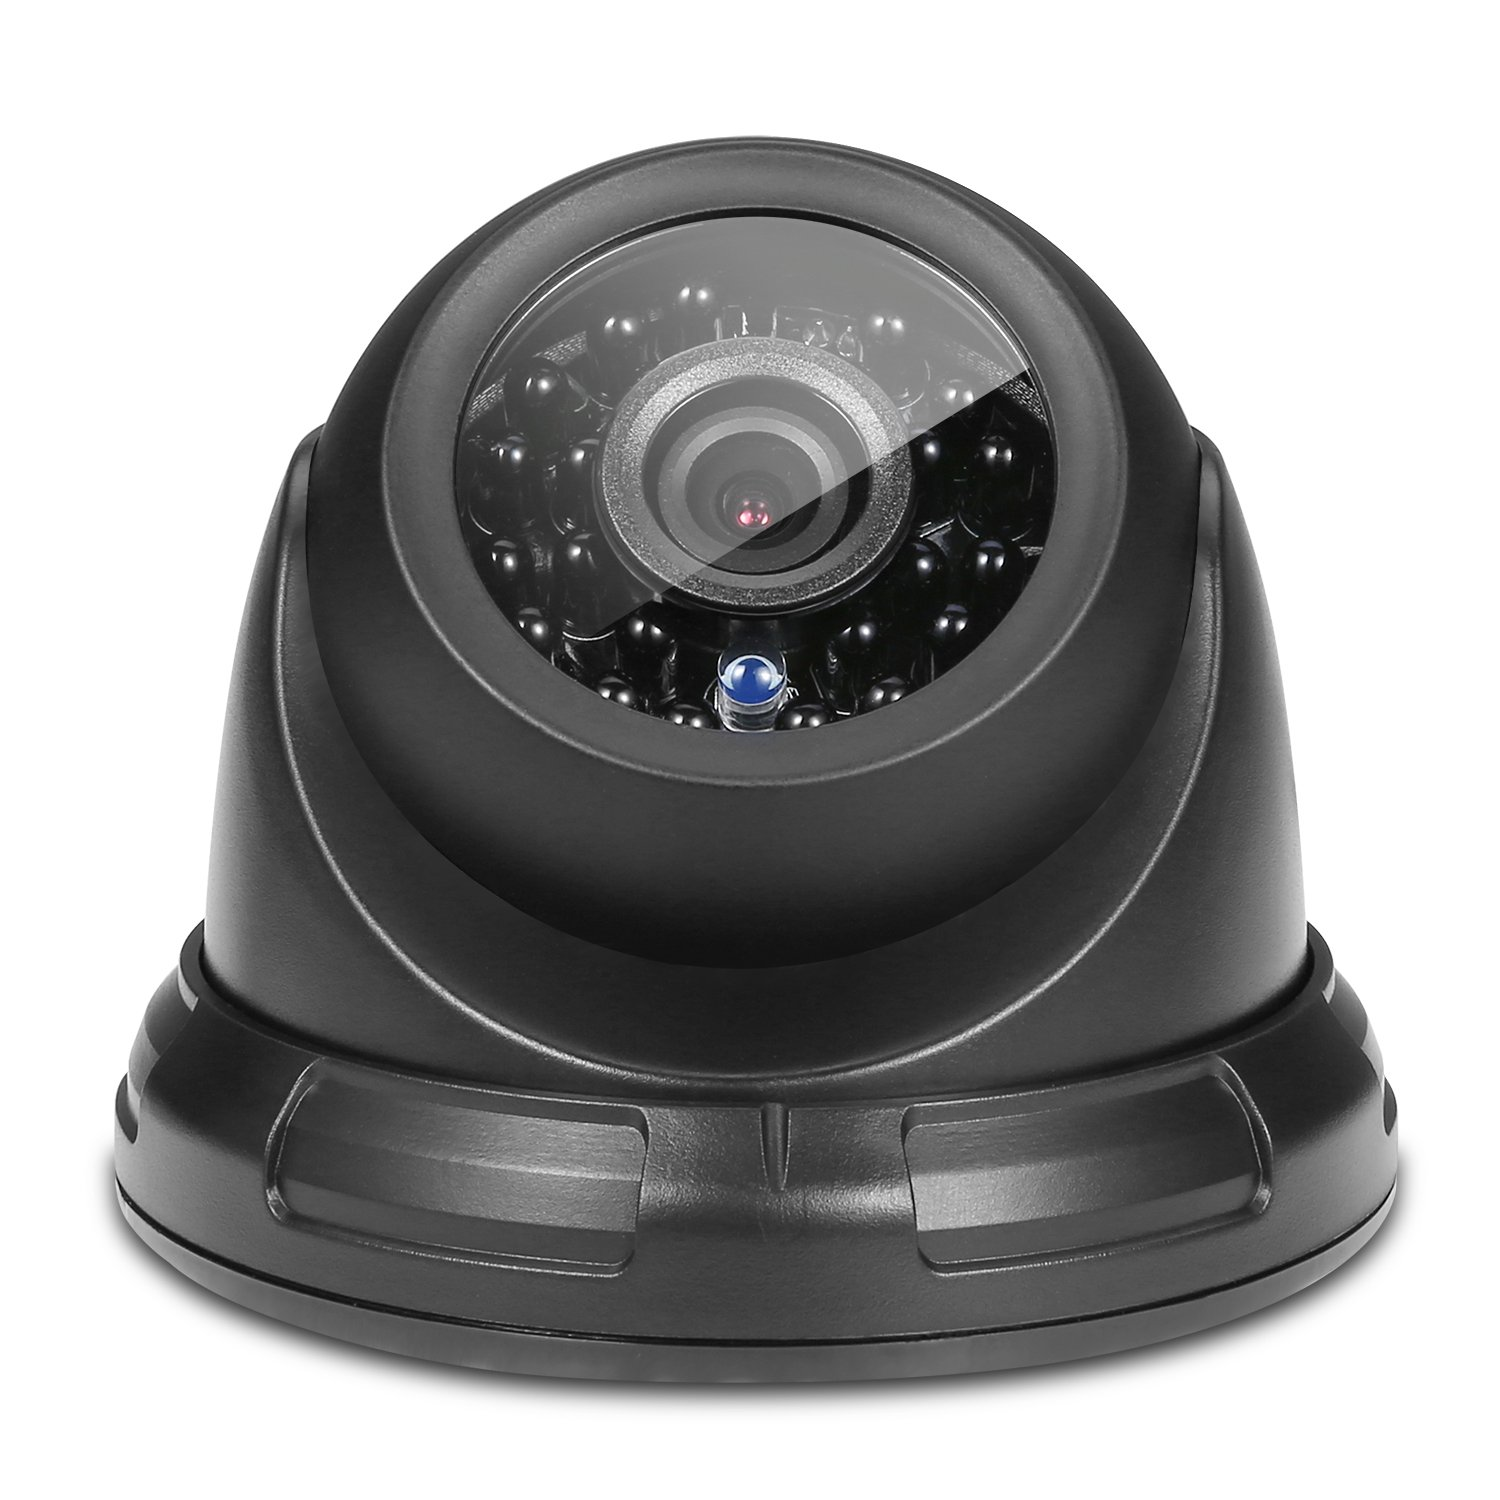 ANNKE TVI 720P High Clarity Security Dome Camera with Weatherproof Housing, 66ft Super Night Vision and Wide Angle of View(Black)